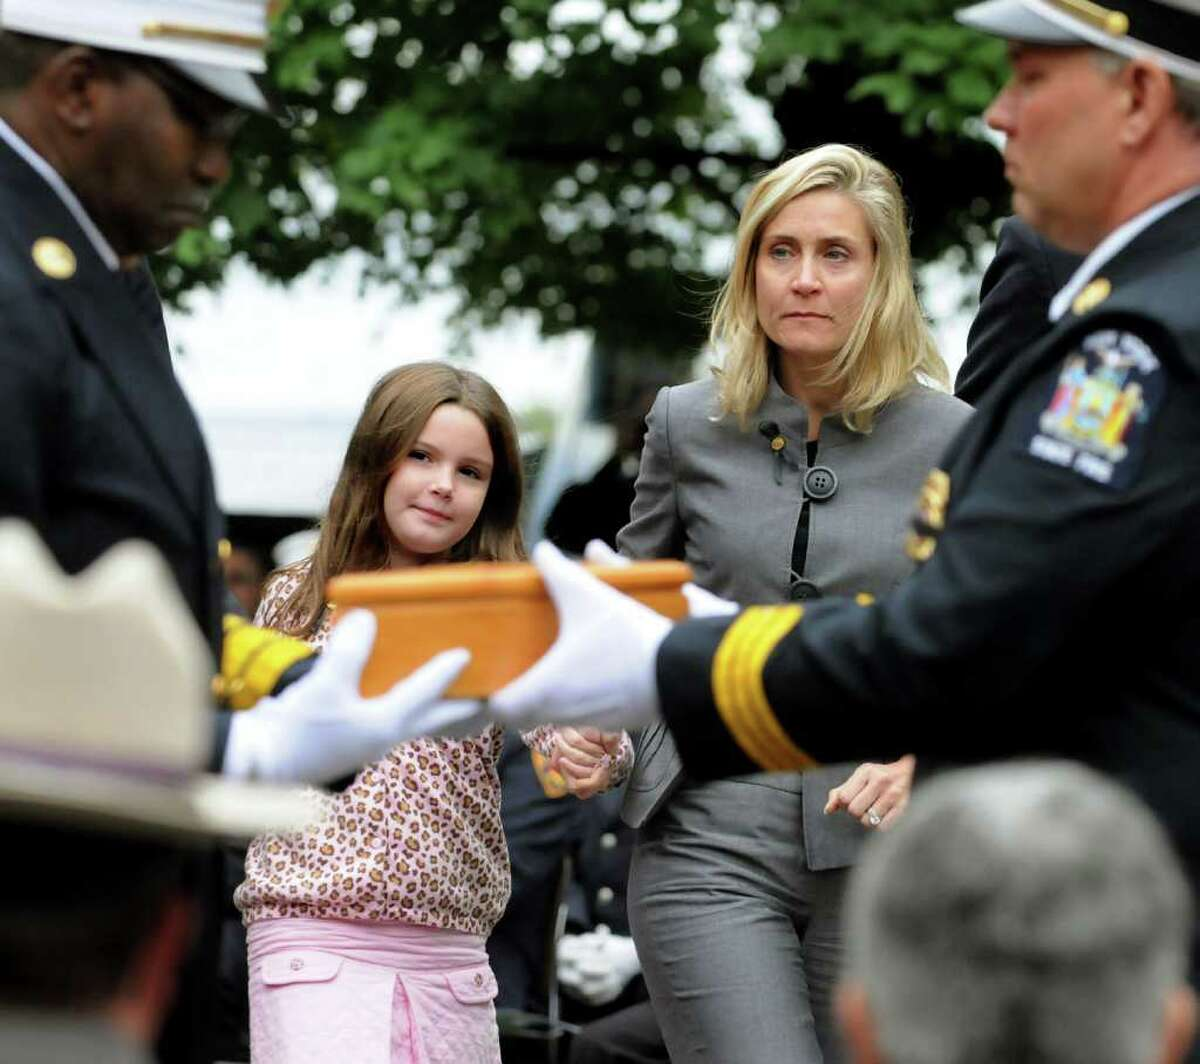 Tara Joyce of Eastchester, whose husband, Patrick Joyce Jr., died fighting a fire last October in Yonkers, and their daughter Isabella, 8, receive flags at the Fallen Firefighters Memorial Ceremony on Tuesday at the Empire State Plaza in Albany. The ceremony honored nine firefighters who gave their lives in the line of duty. Of the firefighters added to the wall, seven died in 2009 and the other two are from previous years. There are now 2,357 names on the wall. (Cindy Schultz / Times Union)t. (Cindy Schultz / Times Union)